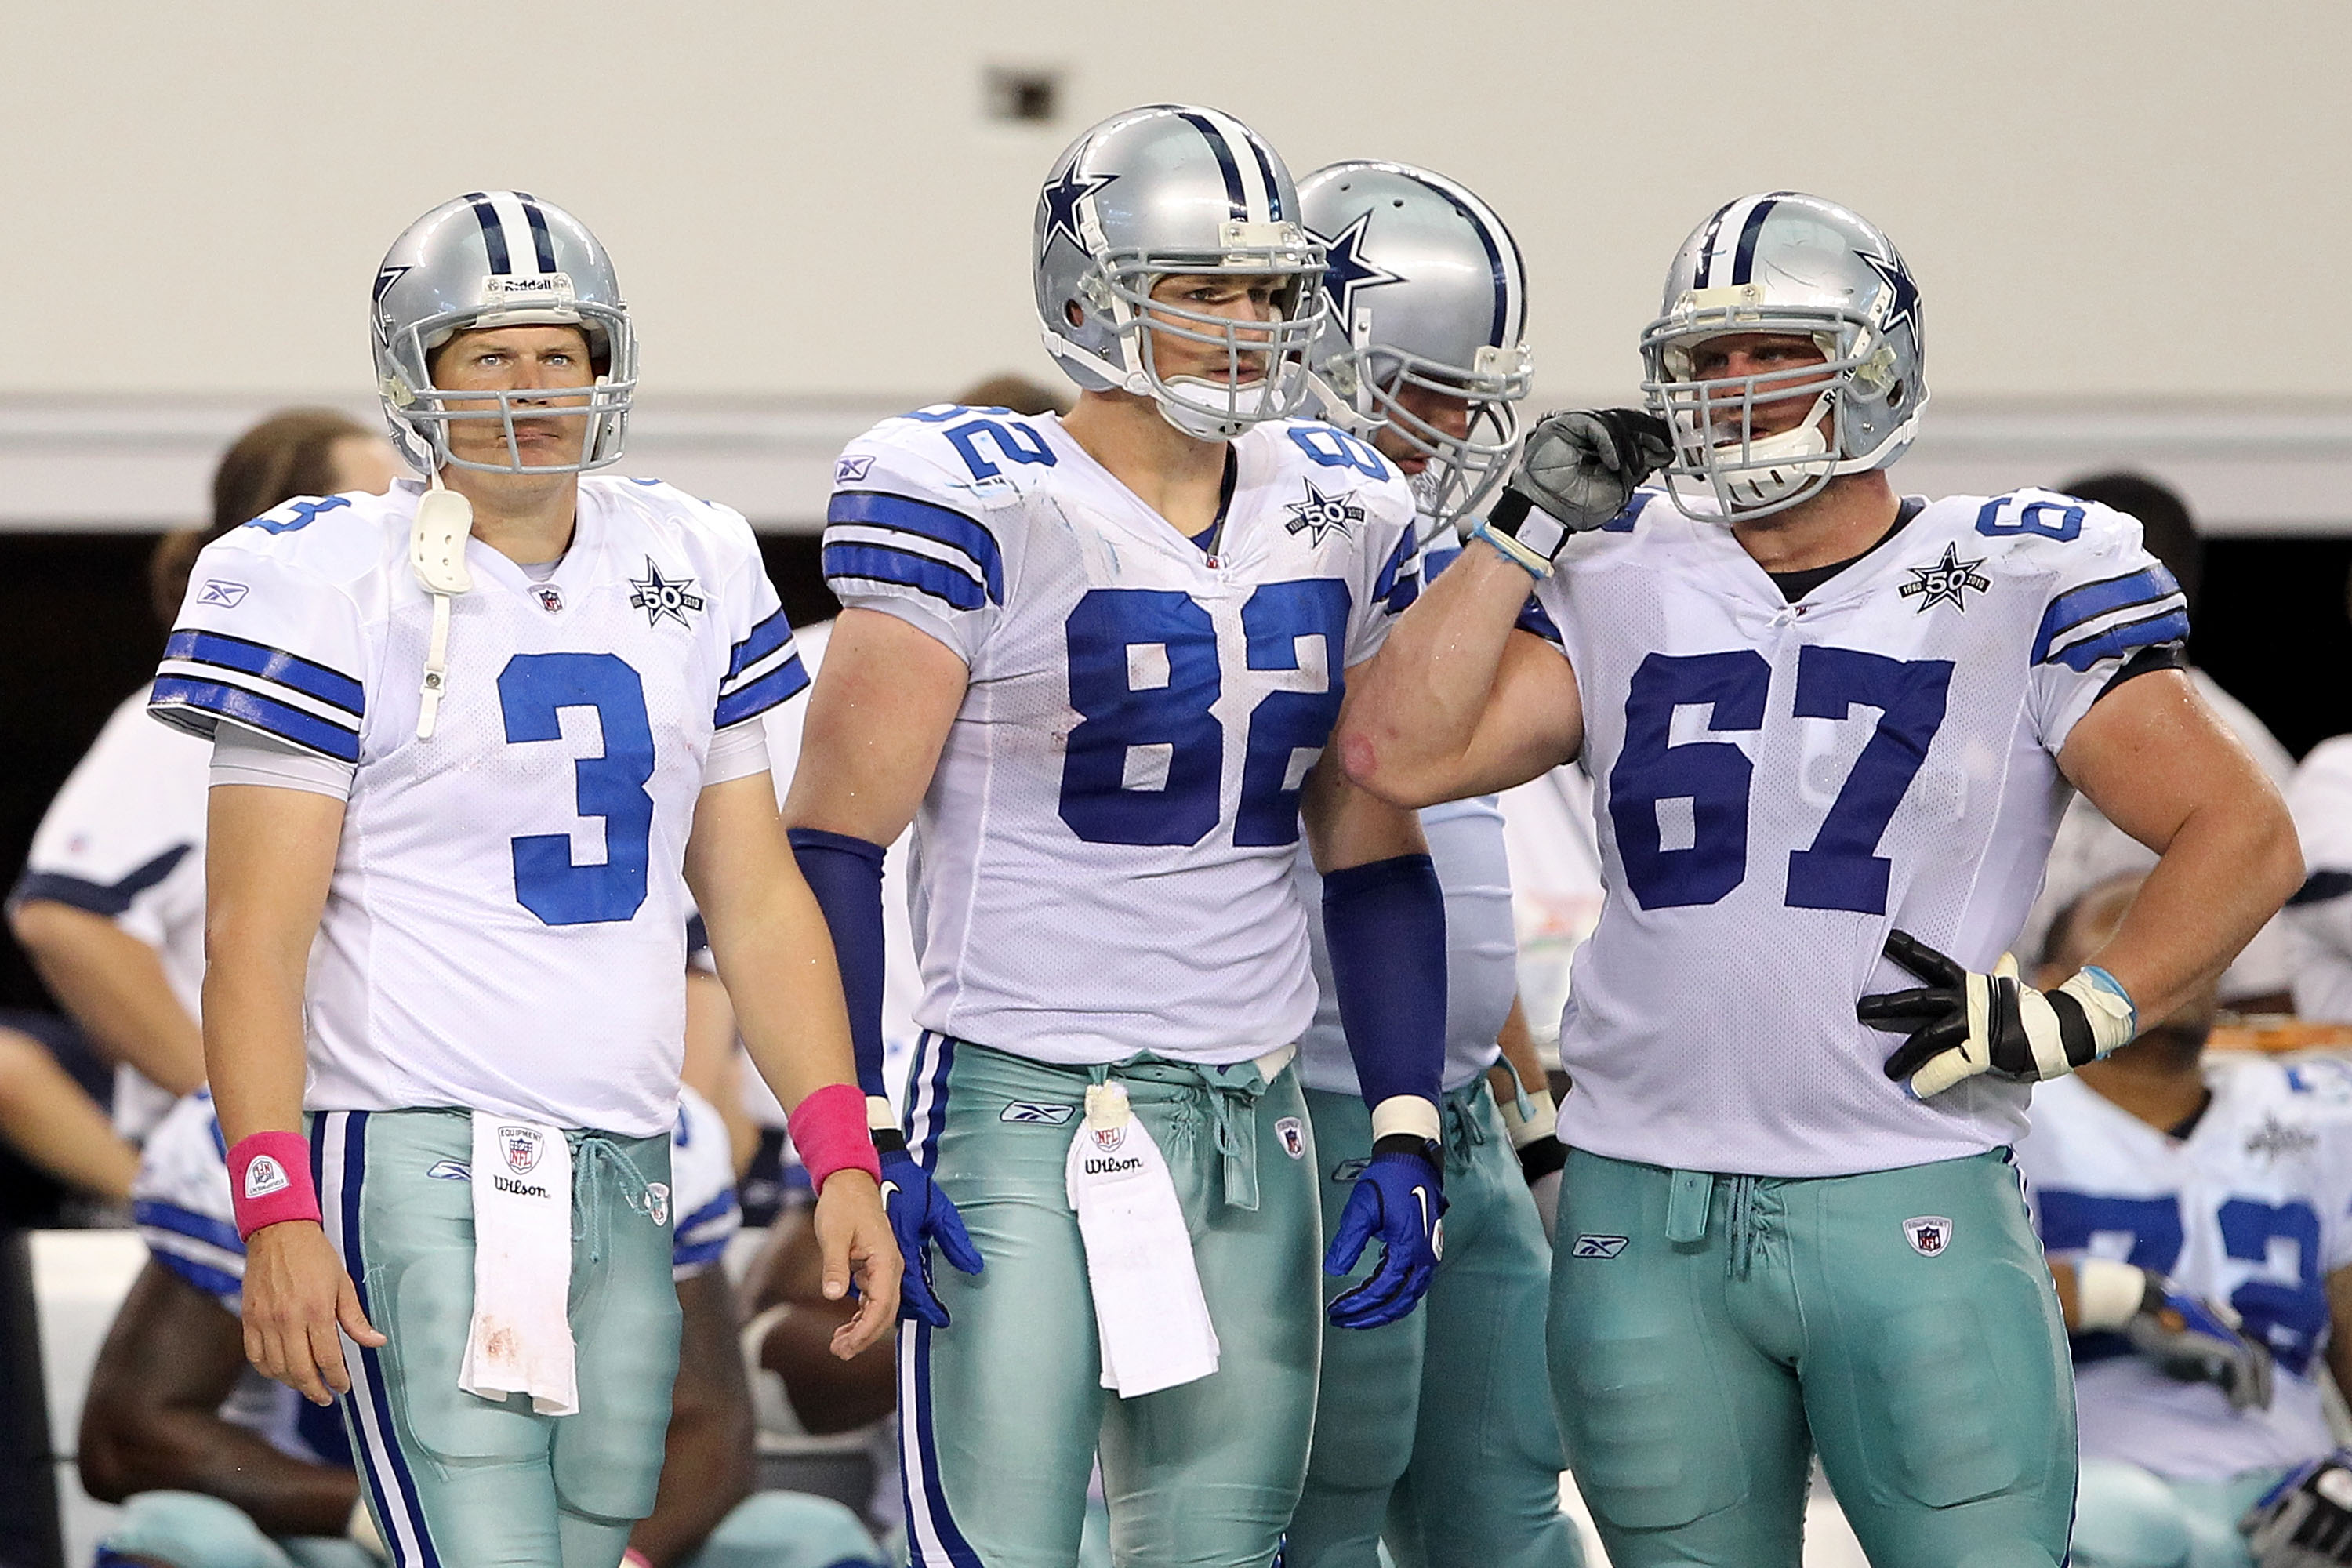 ARLINGTON, TX - OCTOBER 31:  (L-R) Jon Kitna #3, Jason Witten #82 and Phil Costa #67 of the Dallas Cowboys look on from the sideline late in the fourth quarter against the Jacksonville Jaguars at Cowboys Stadium on October 31, 2010 in Arlington, Texas.  (